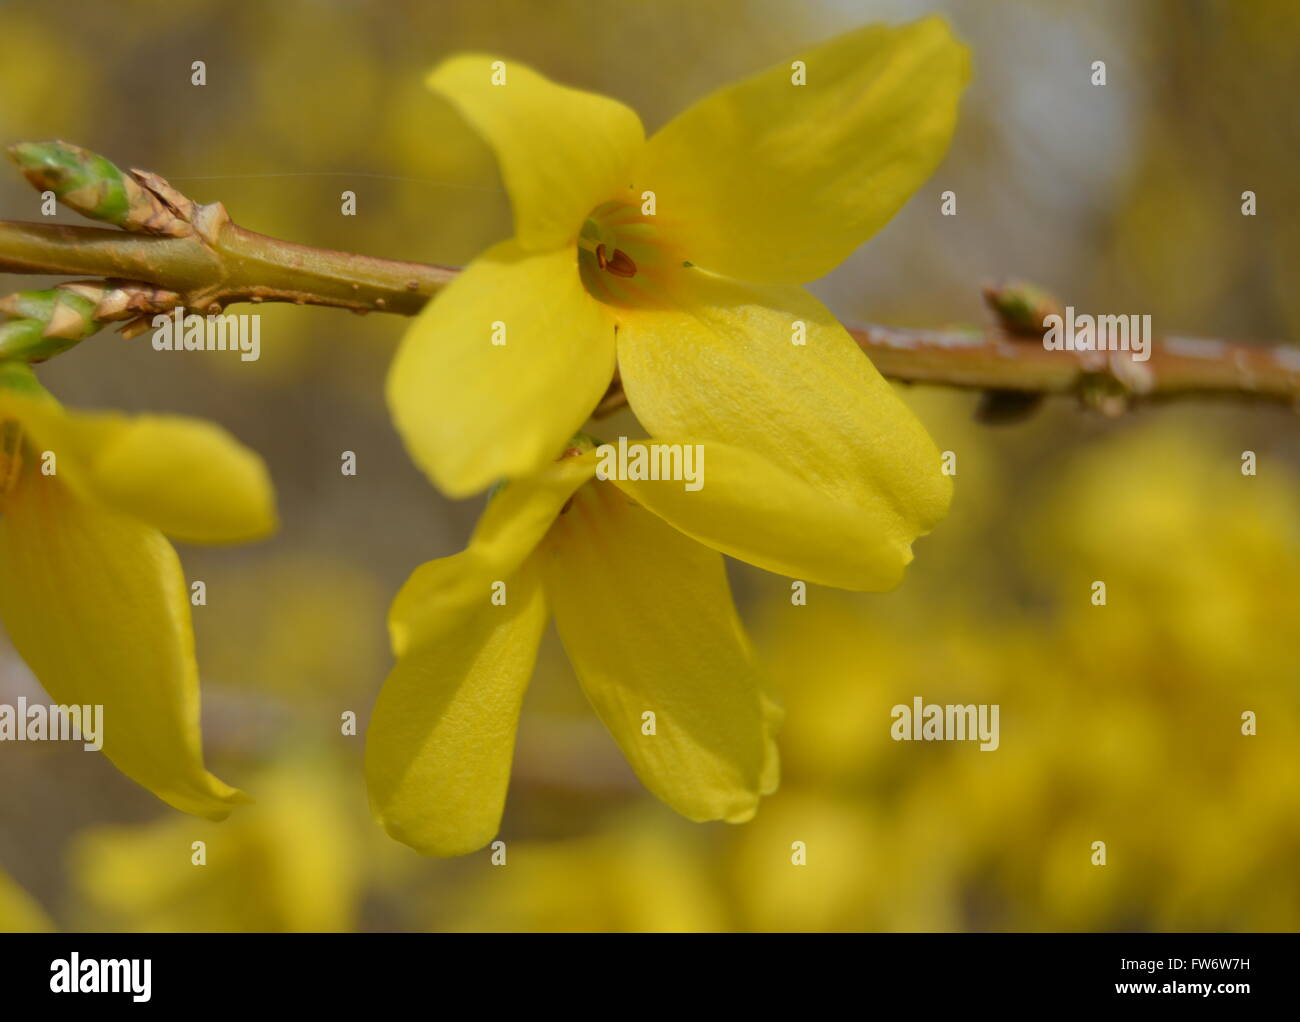 two-forsythia-blooms-with-blurred-backgr